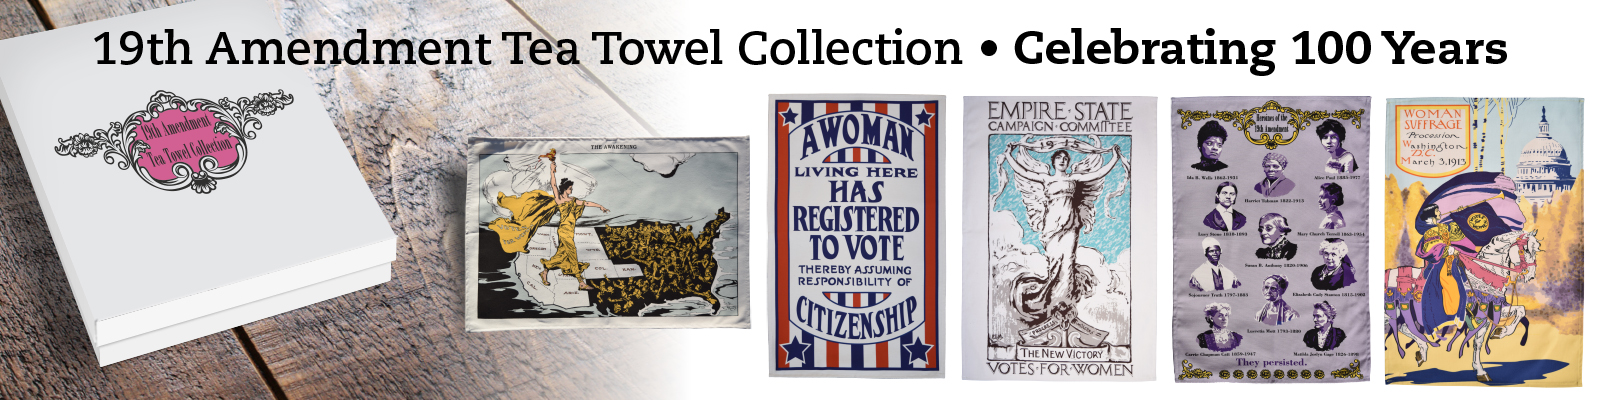 19th Amendment Tea Towel Collection